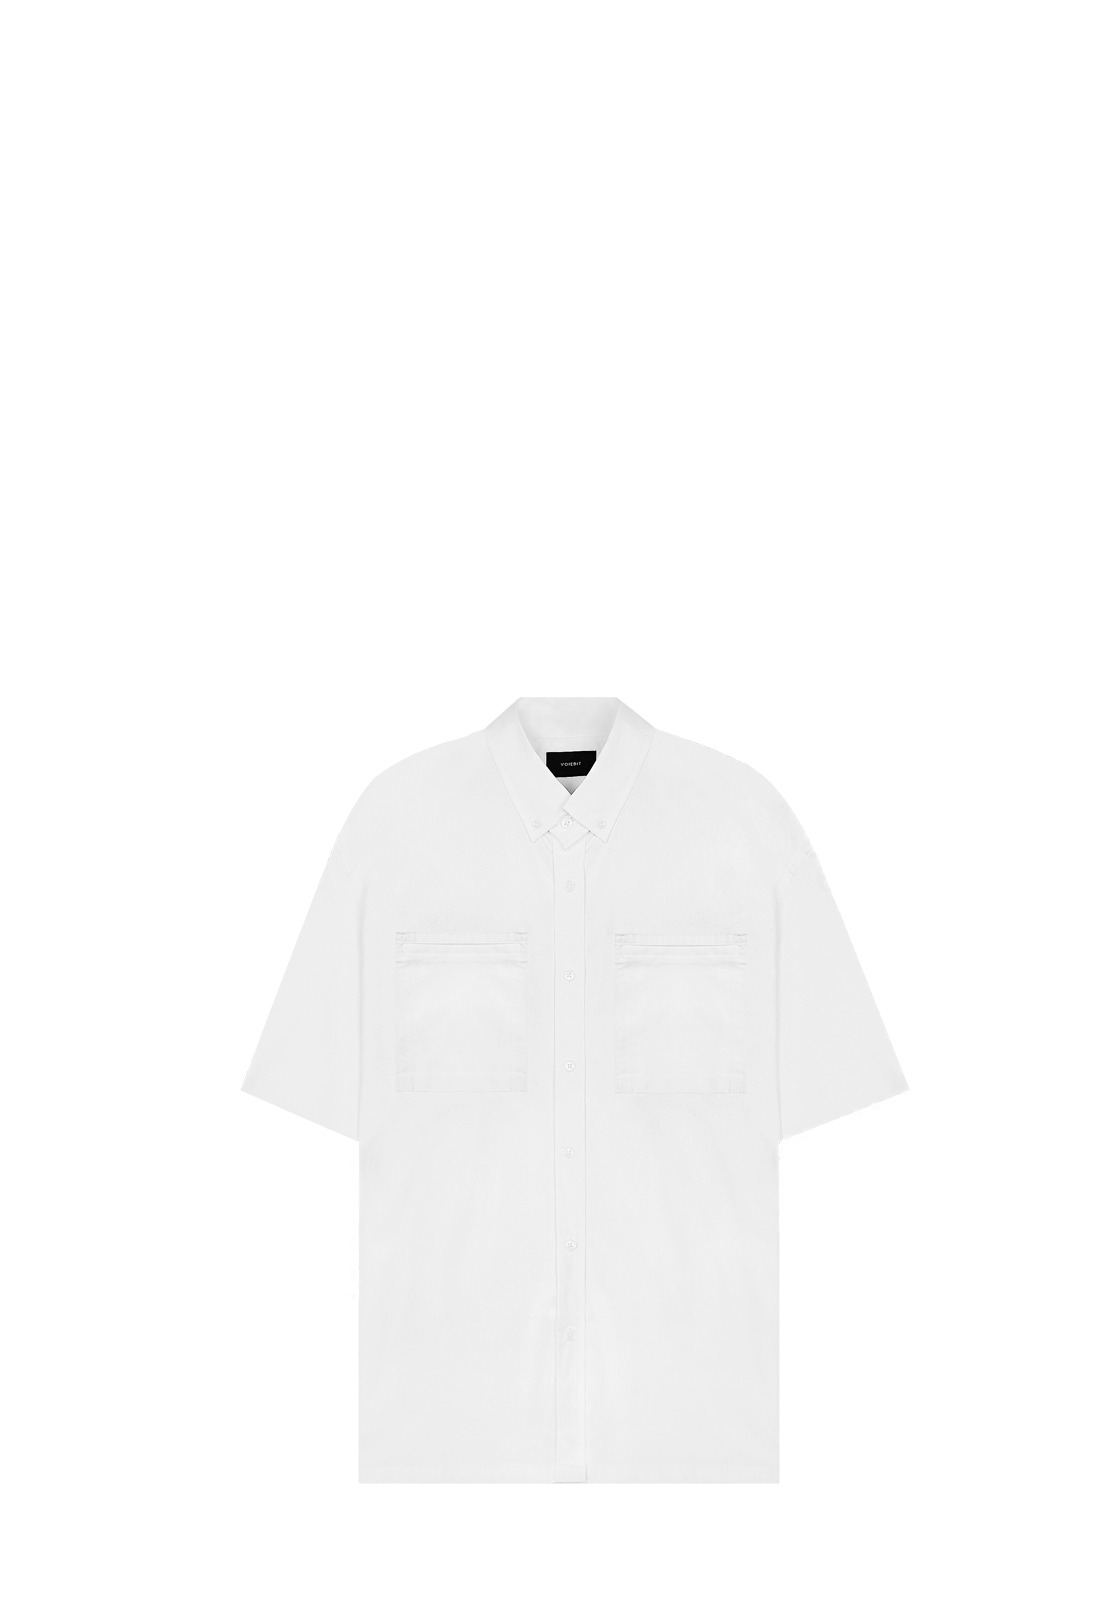 V424 DOUBLE LIP POCKET SHIRT  WHITE